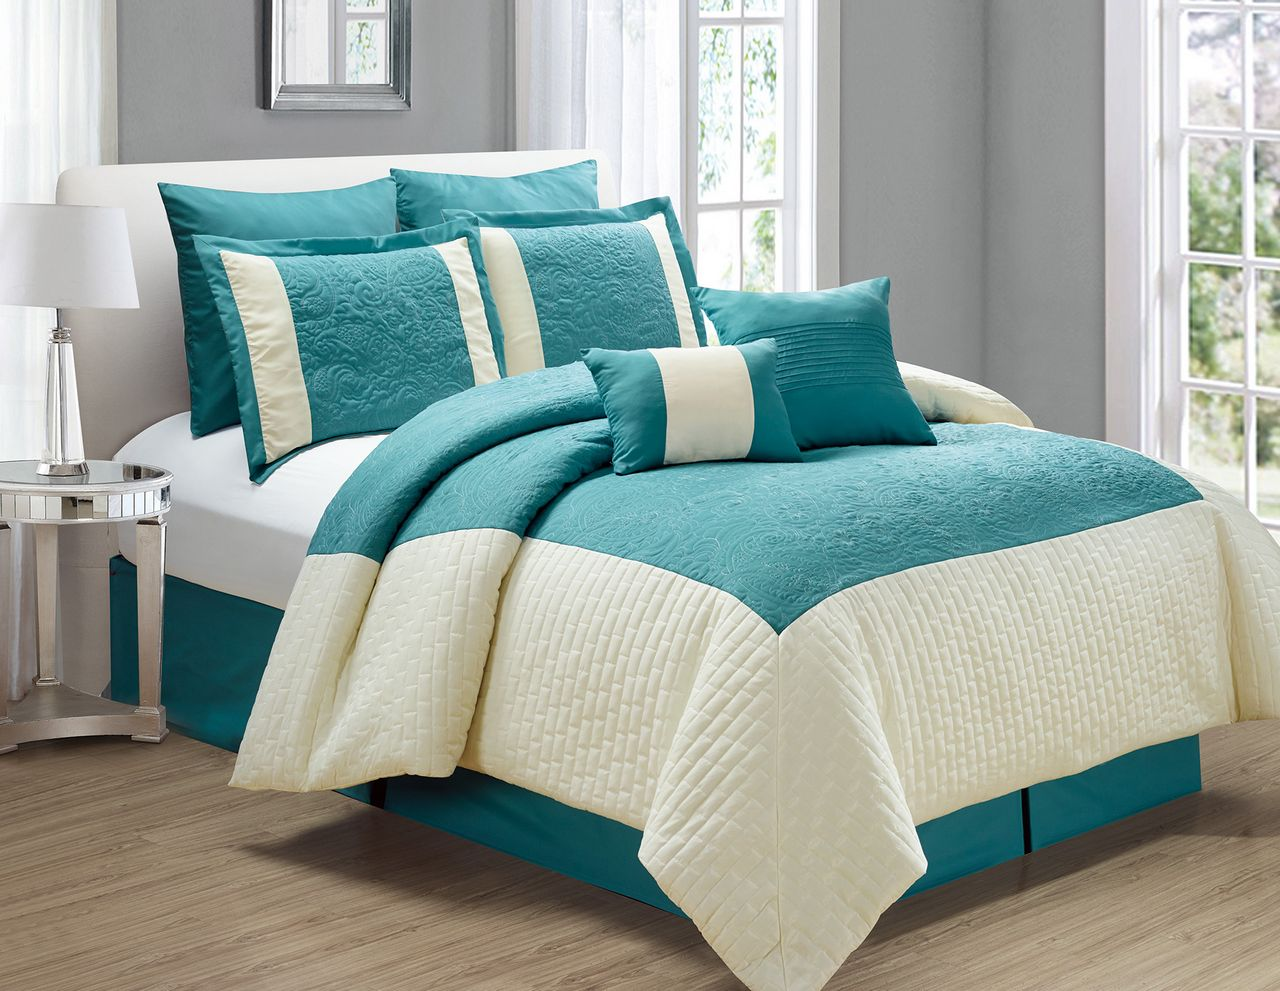 8 Piece Poloma Teal Ivory Comforter Set